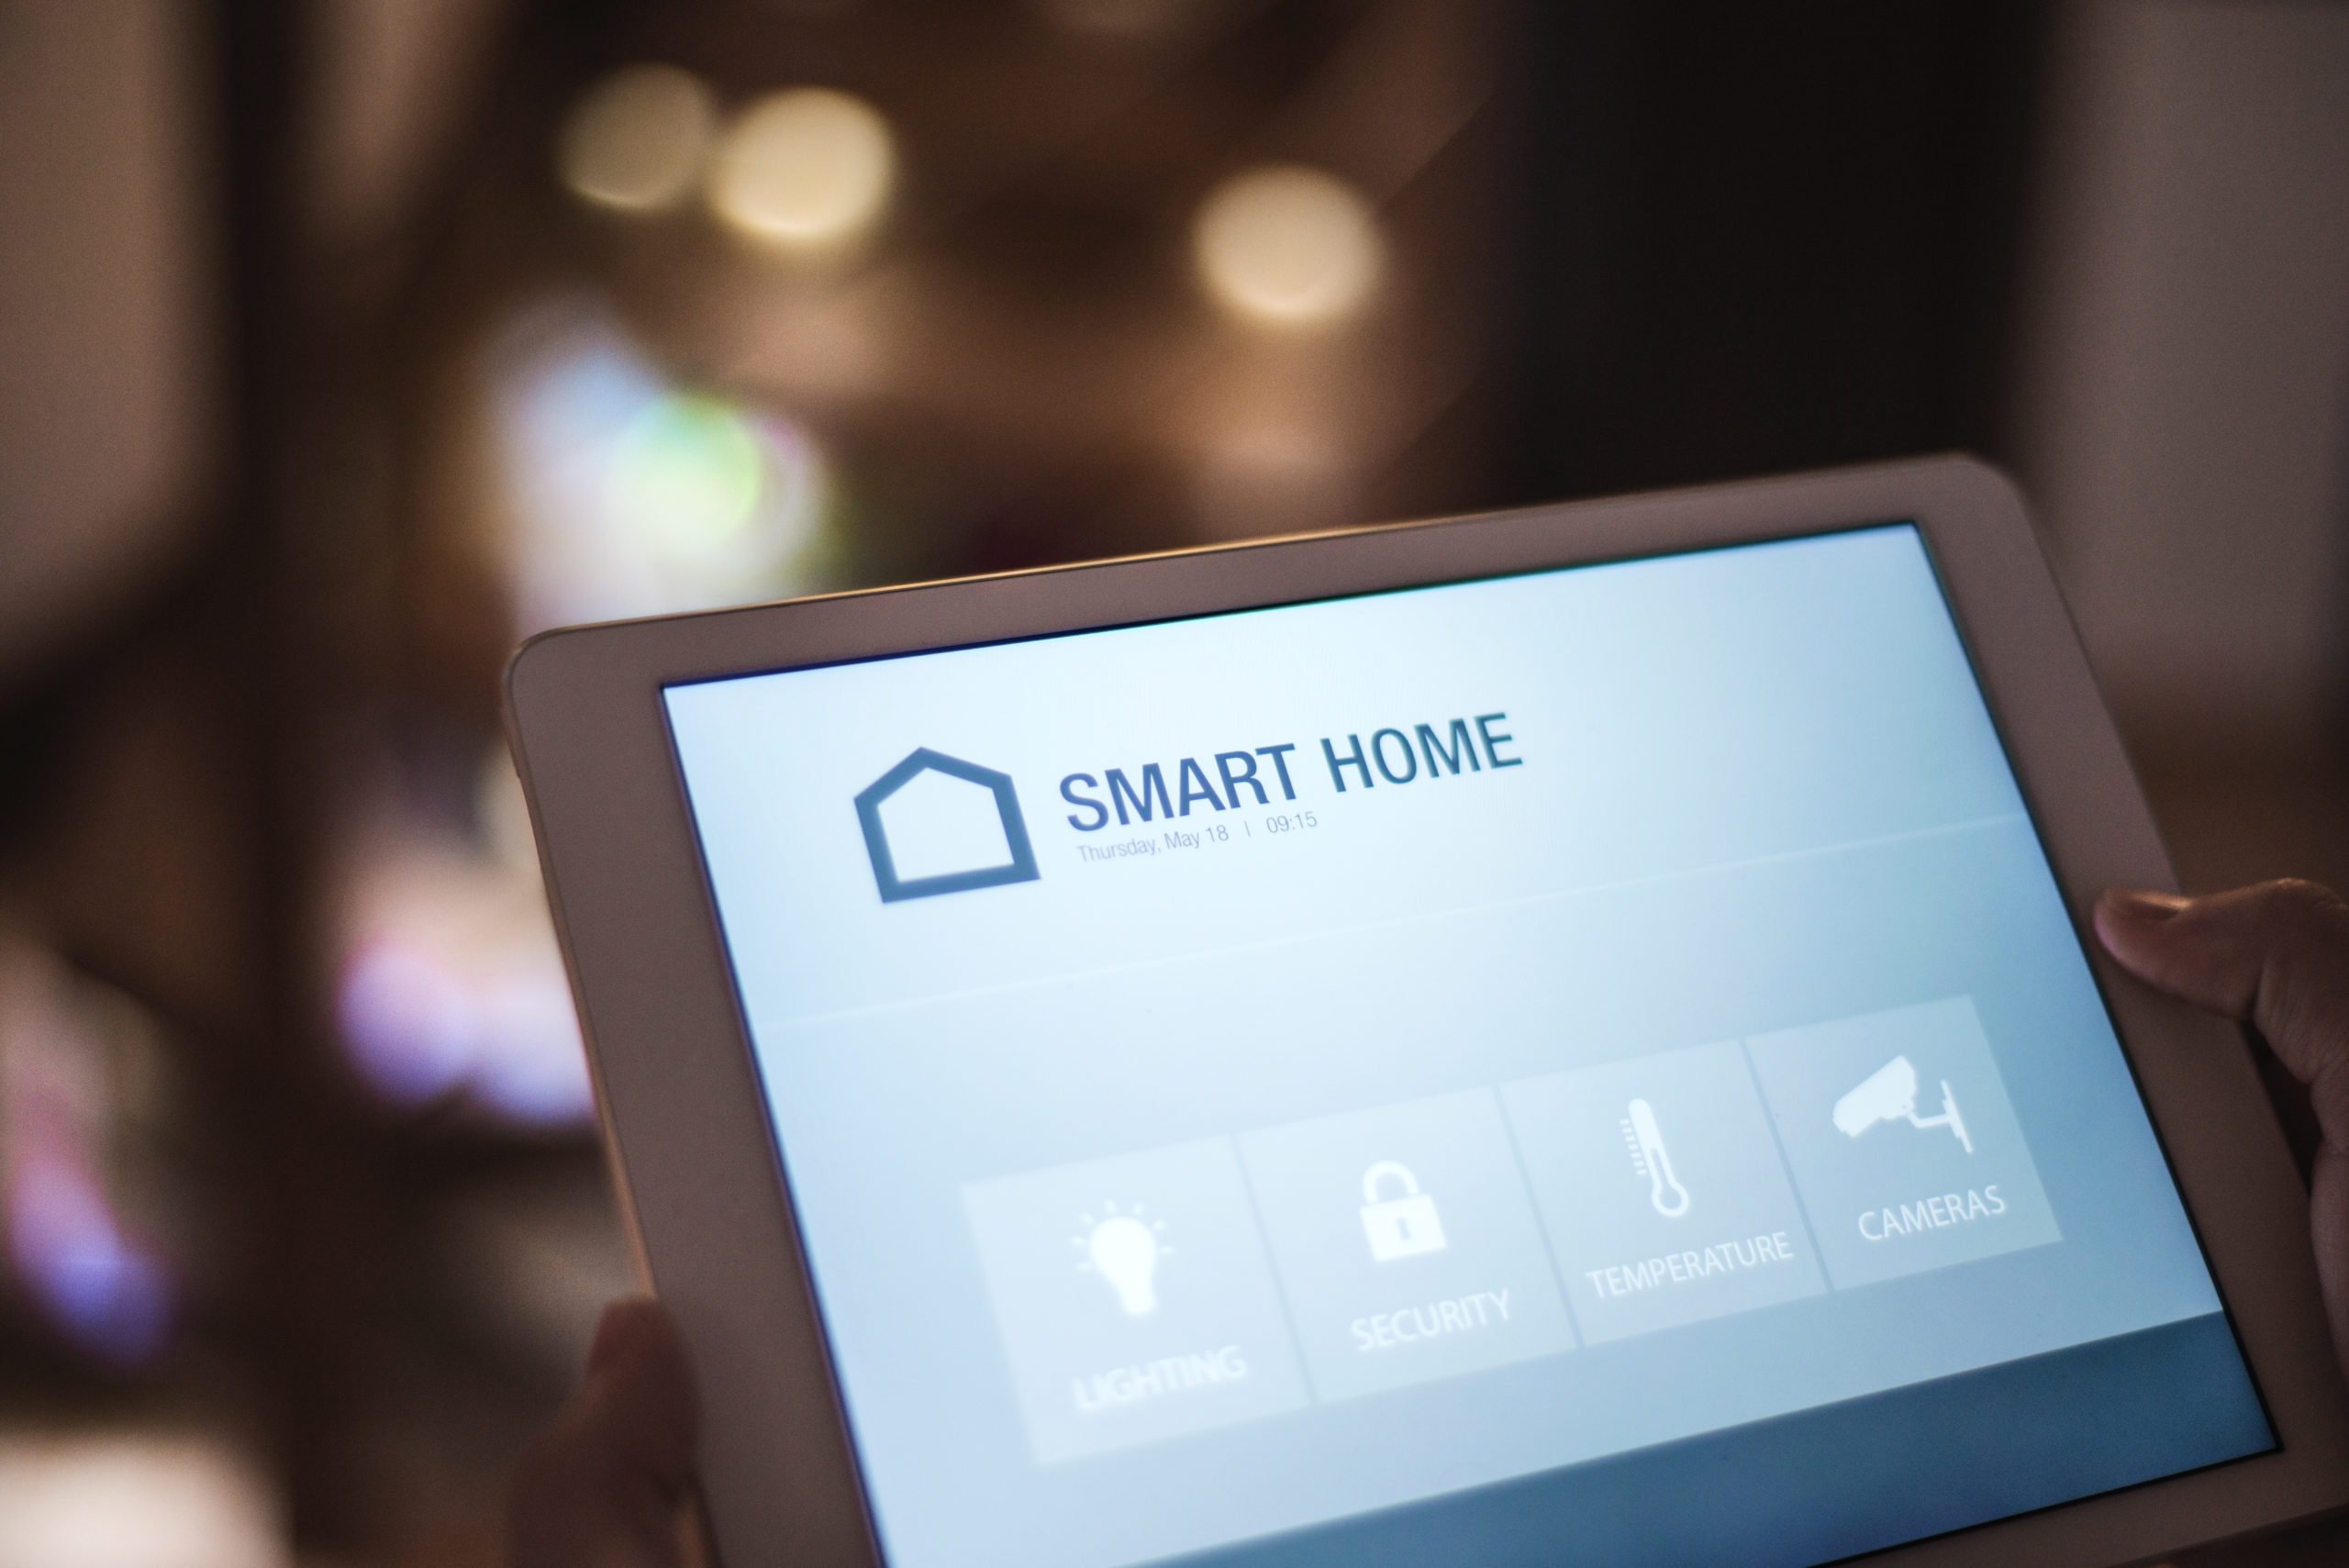 Best smart home hubs 2020 https://elements.envato.com/a-tablet-with-smart-home-screen-P2ZJD7T